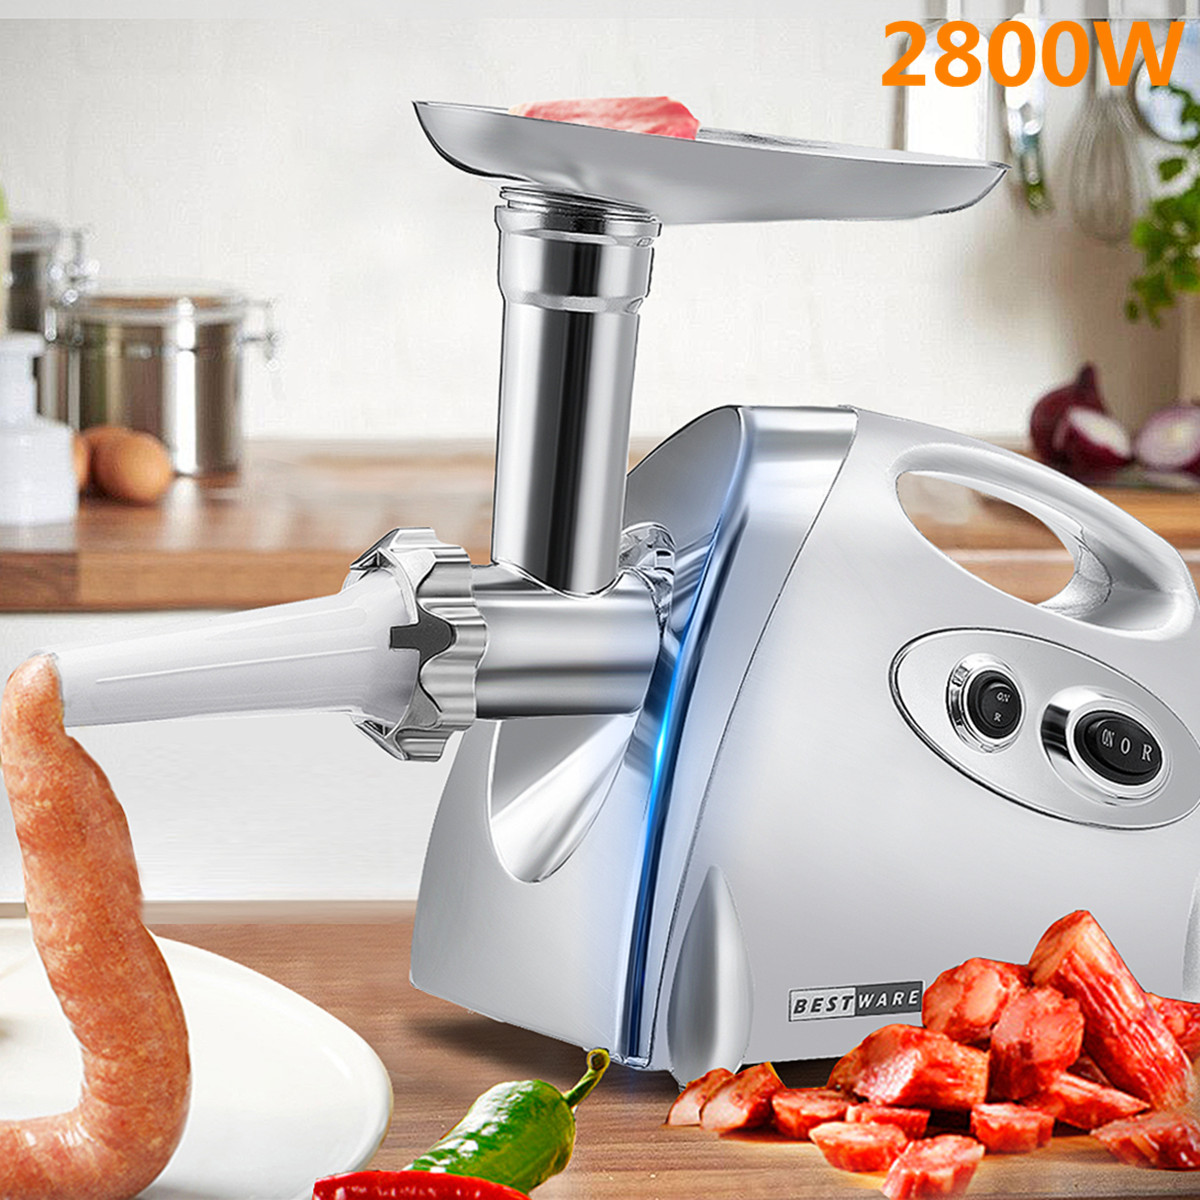 2800W Powerful Stainless Steel Electric Meat Grinders Meat Grinder Kitchen Home Sausage Stuffer Meat Mincer Sonifer Heavy Duty